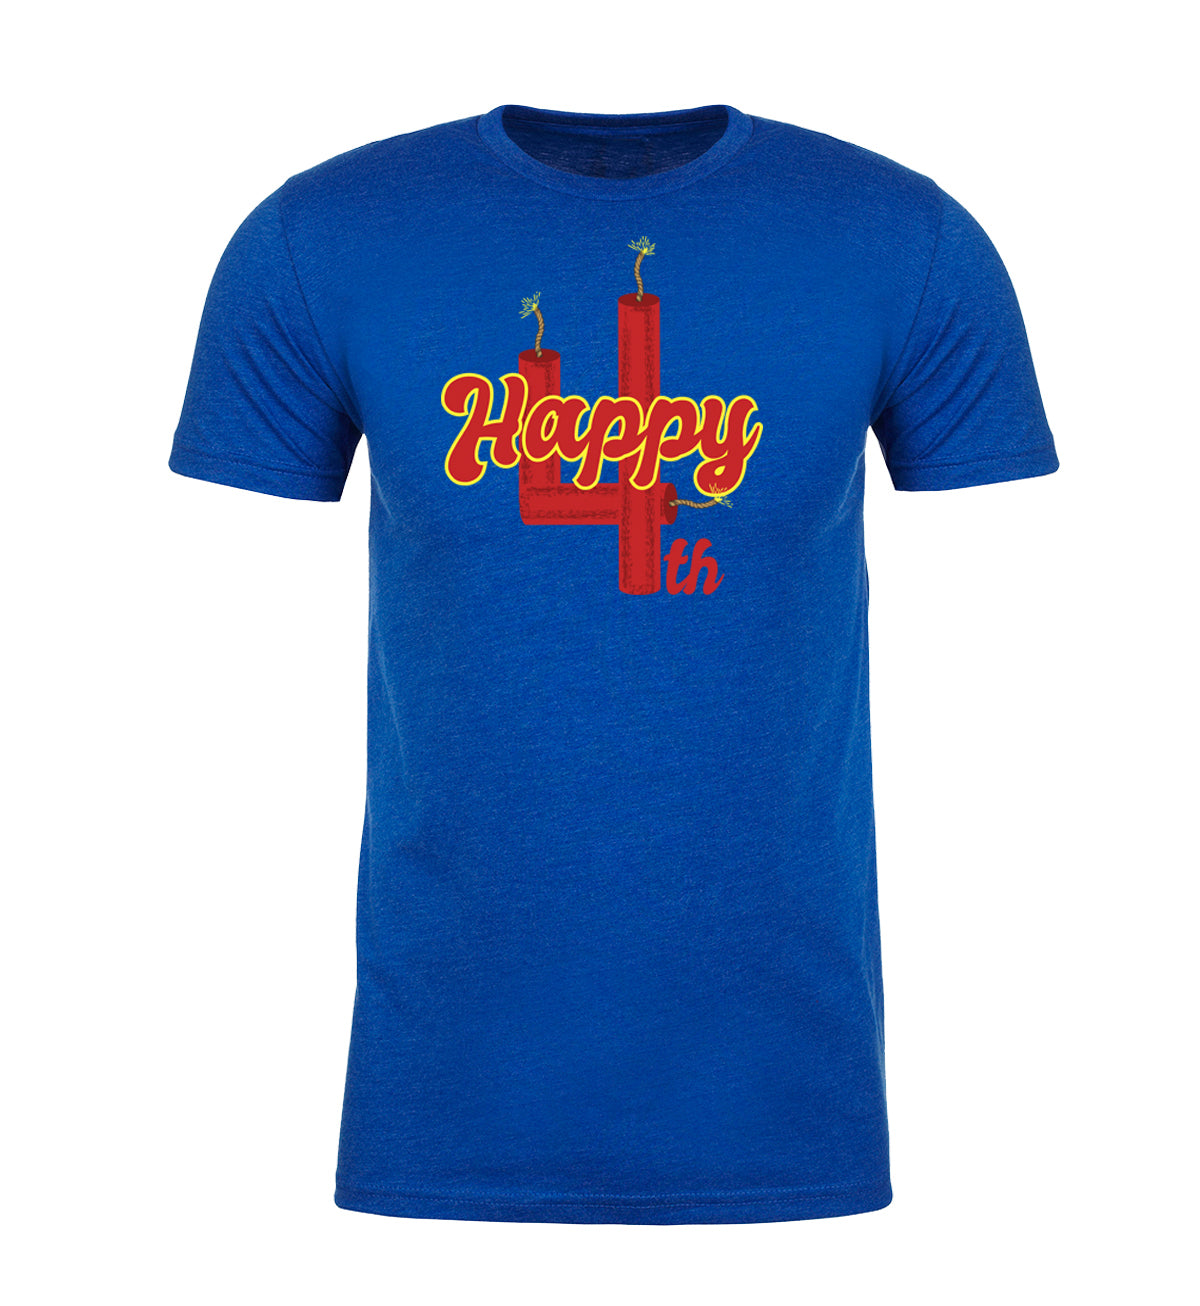 Shirt - Happy 4th Firework T-shirt, Men's 4th Of July Shirts, Independence Day Shirts